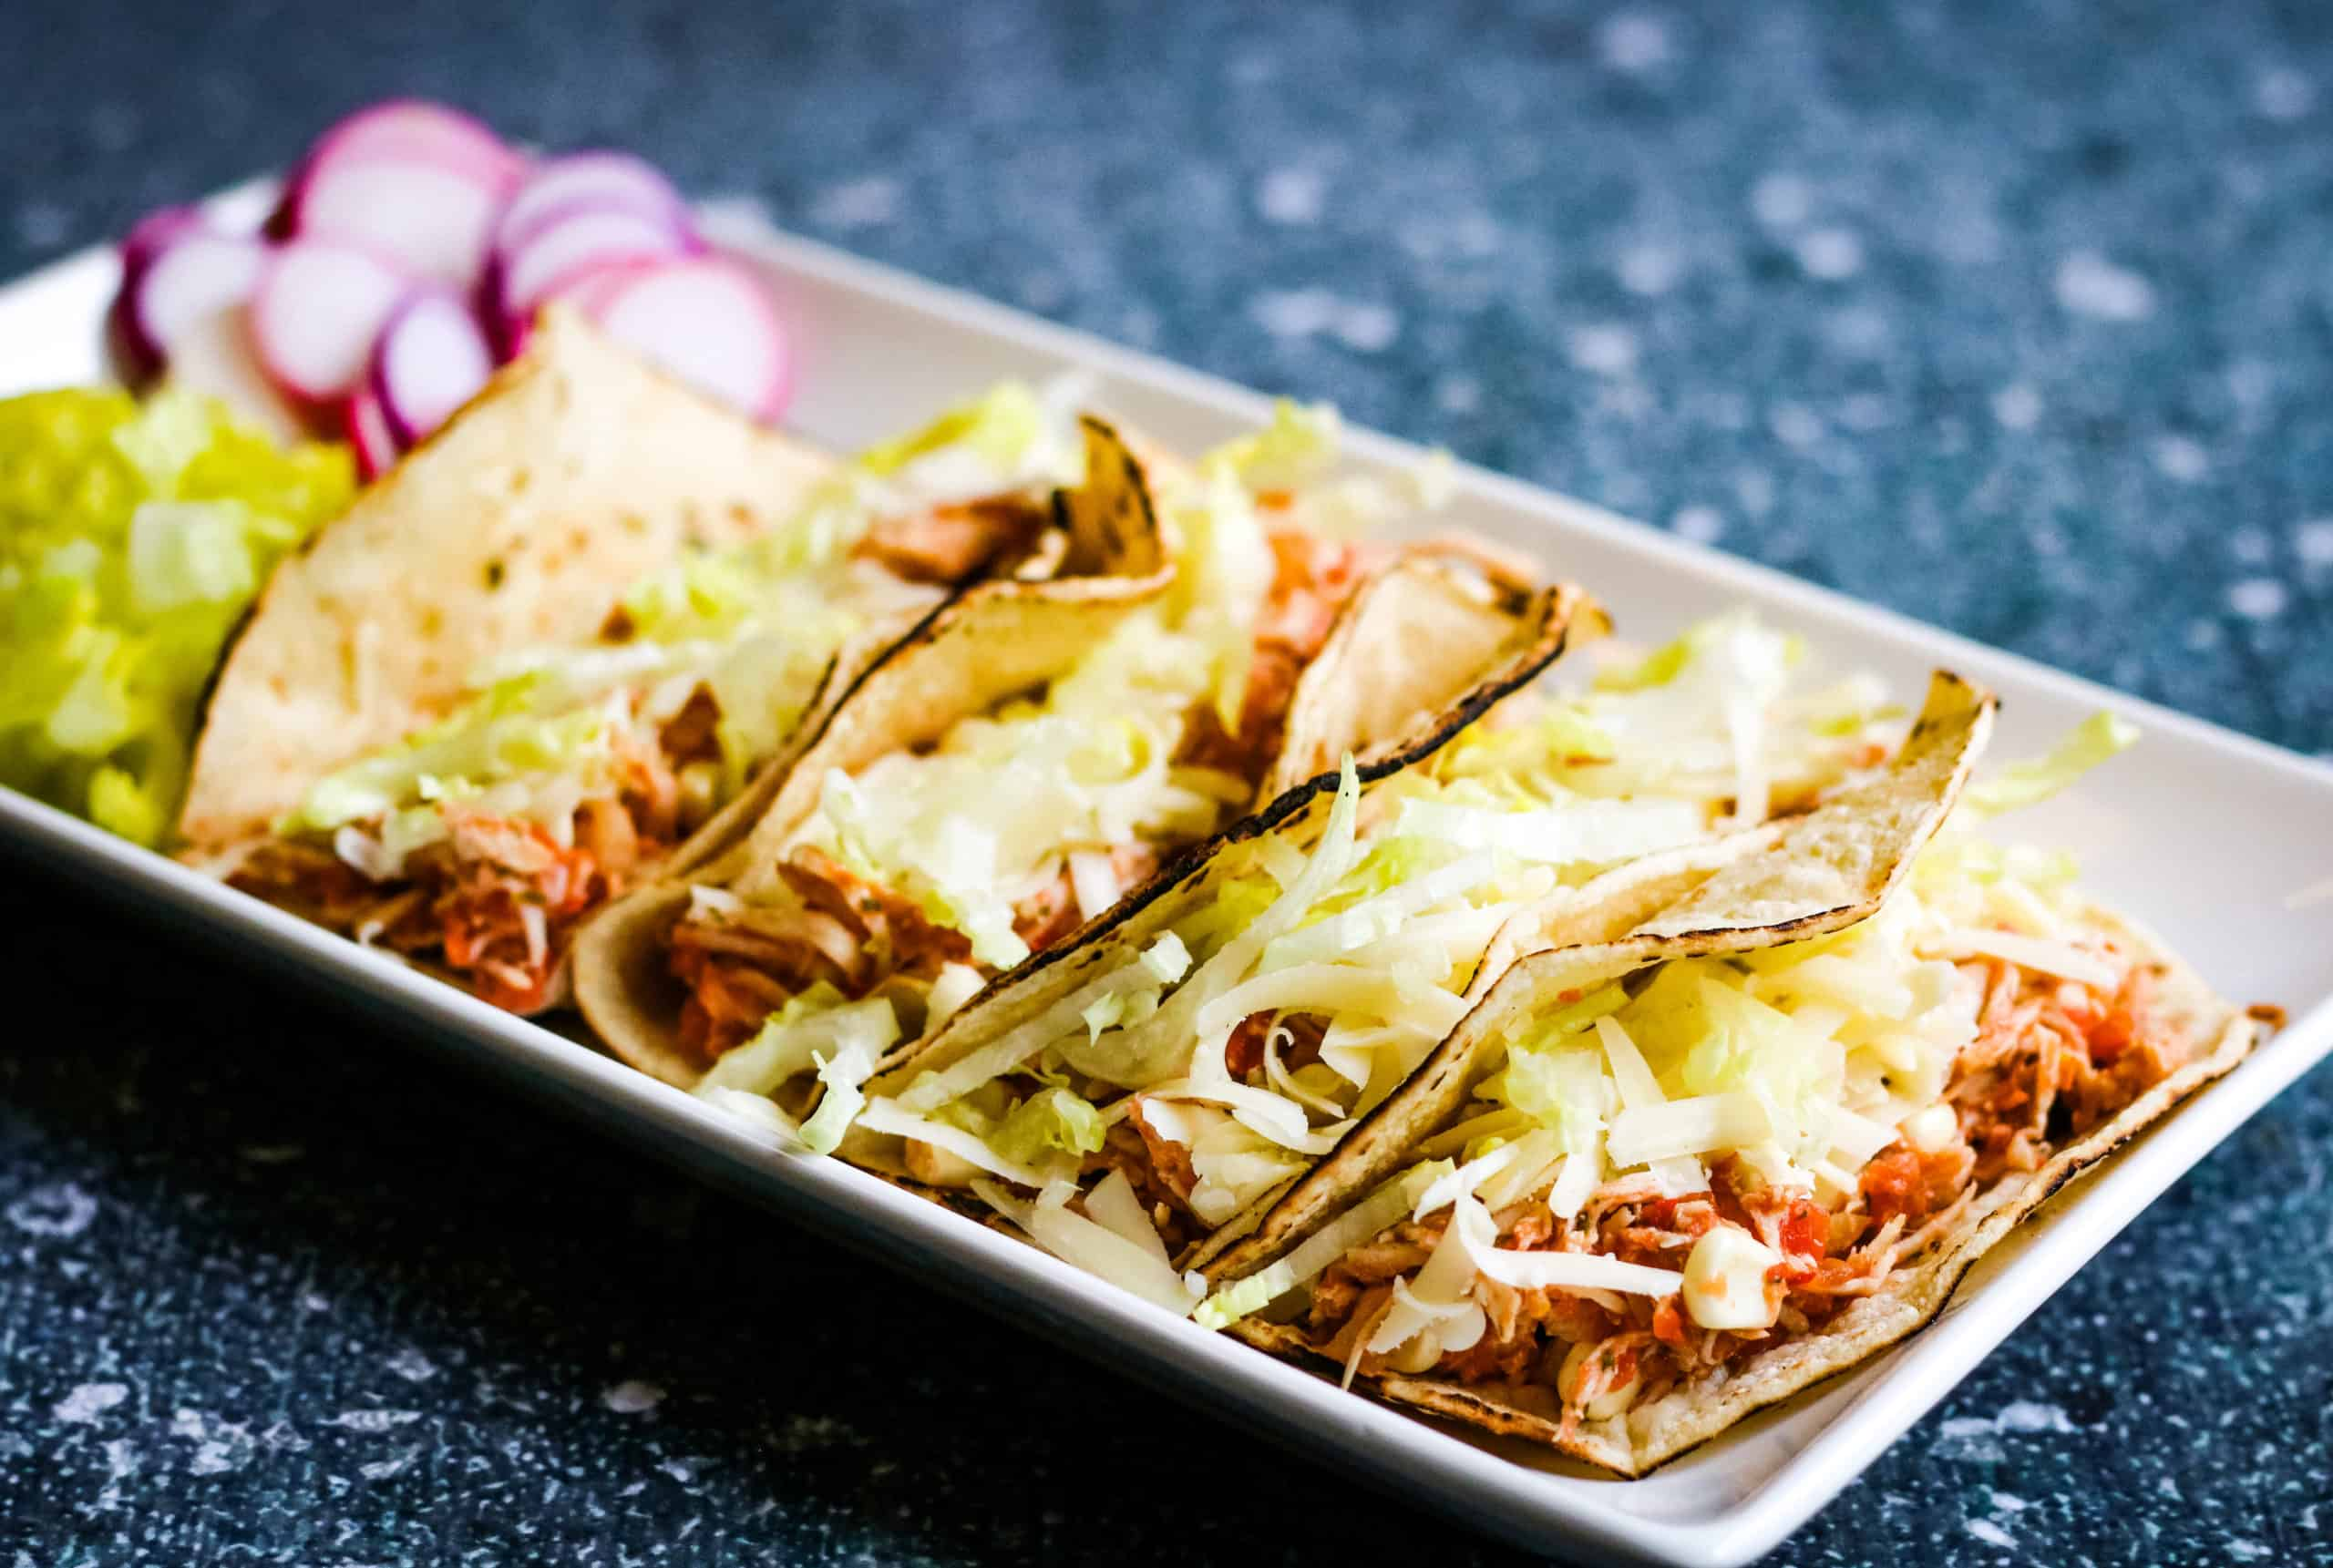 Low angle shot of 4 shredded chicken tacos in soft corn tortillas on a rectangular white plate. There is a pile of shredded lettuce and some sliced radishes on the plate.